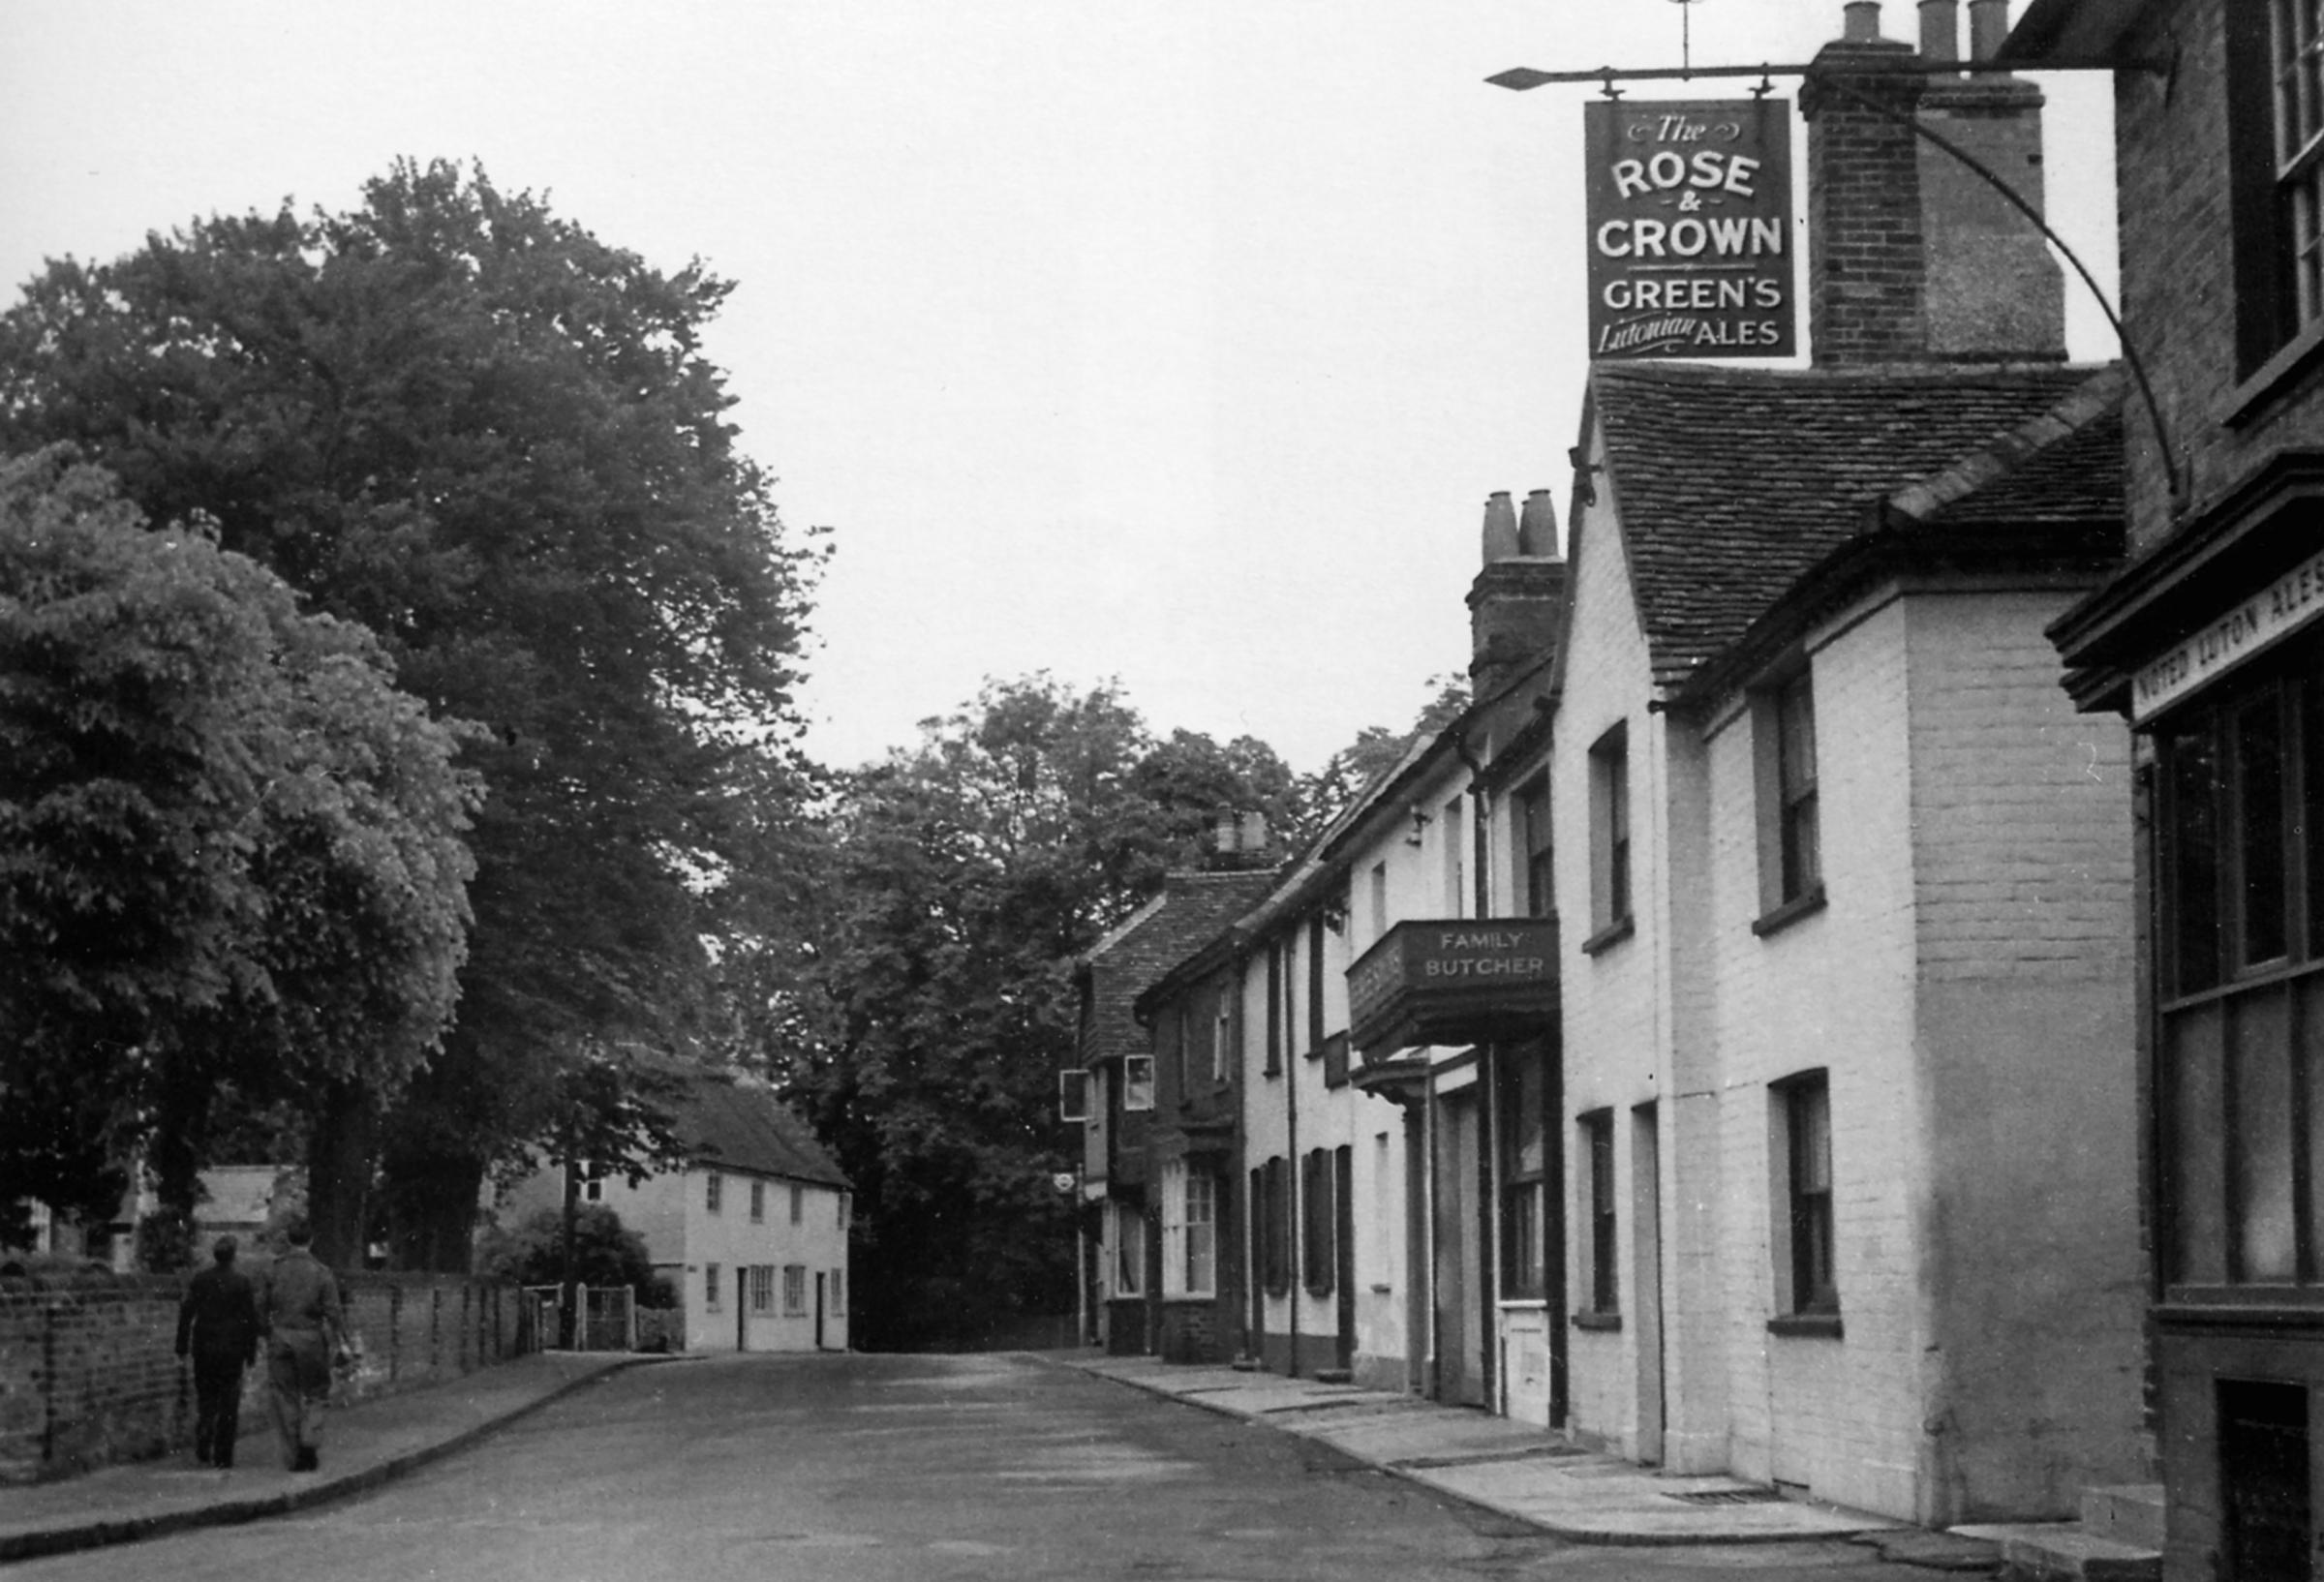 Abbots Langley, shown here in the 1950s, has three links to the Whitechapel Murders